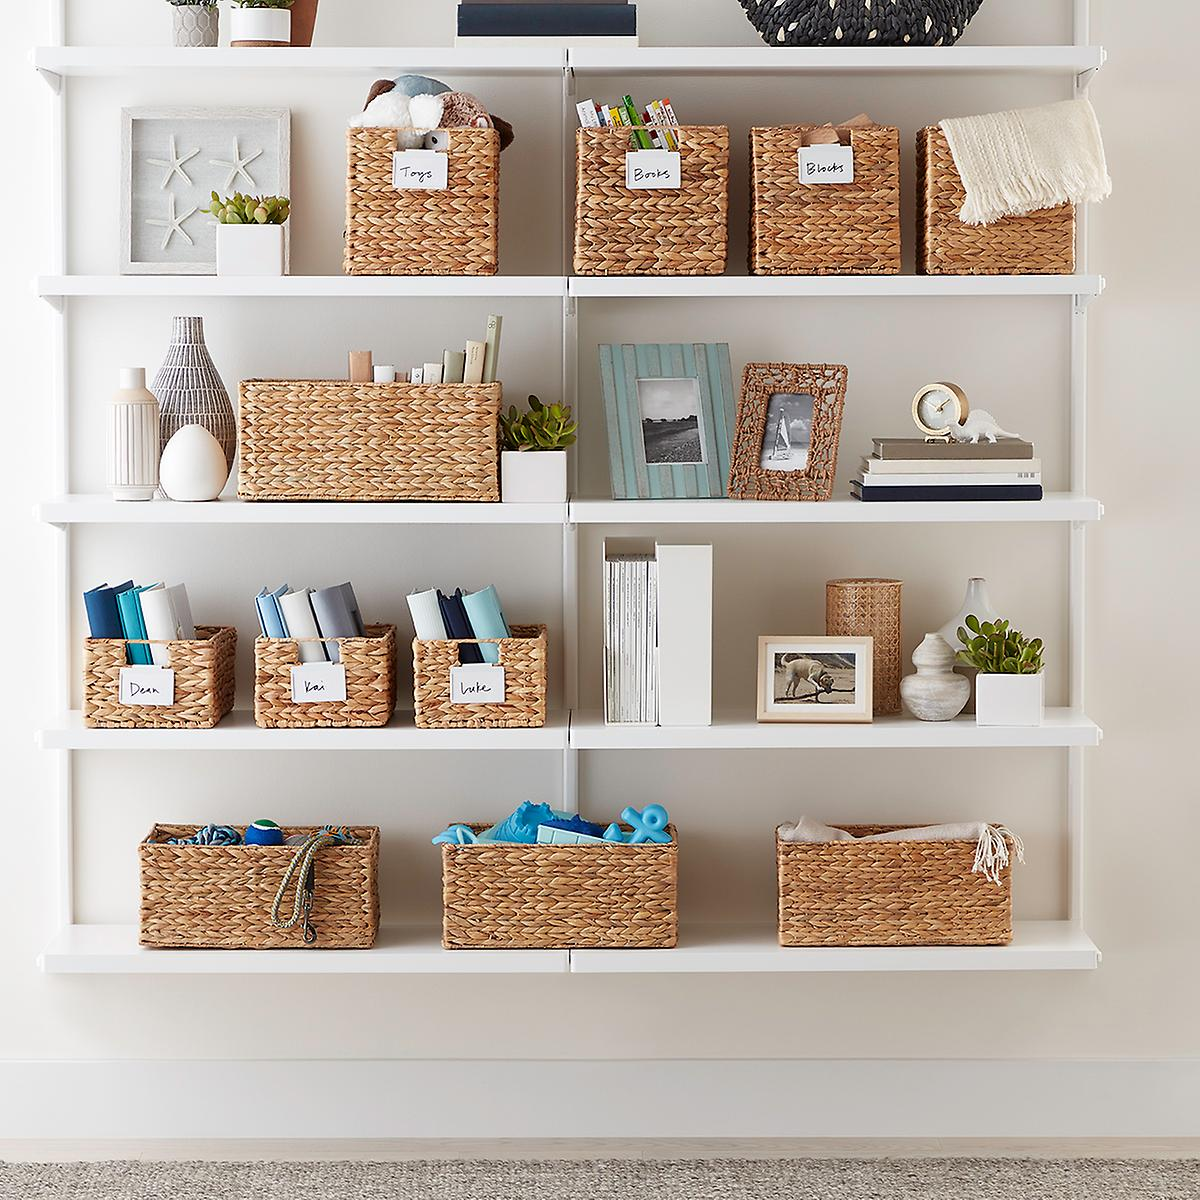 Beautifully constructed, our Water Hyacinth Bins offer an attractive option for storage of a variety of items around your home. Choose from several functional sizes of this popular woven basket.